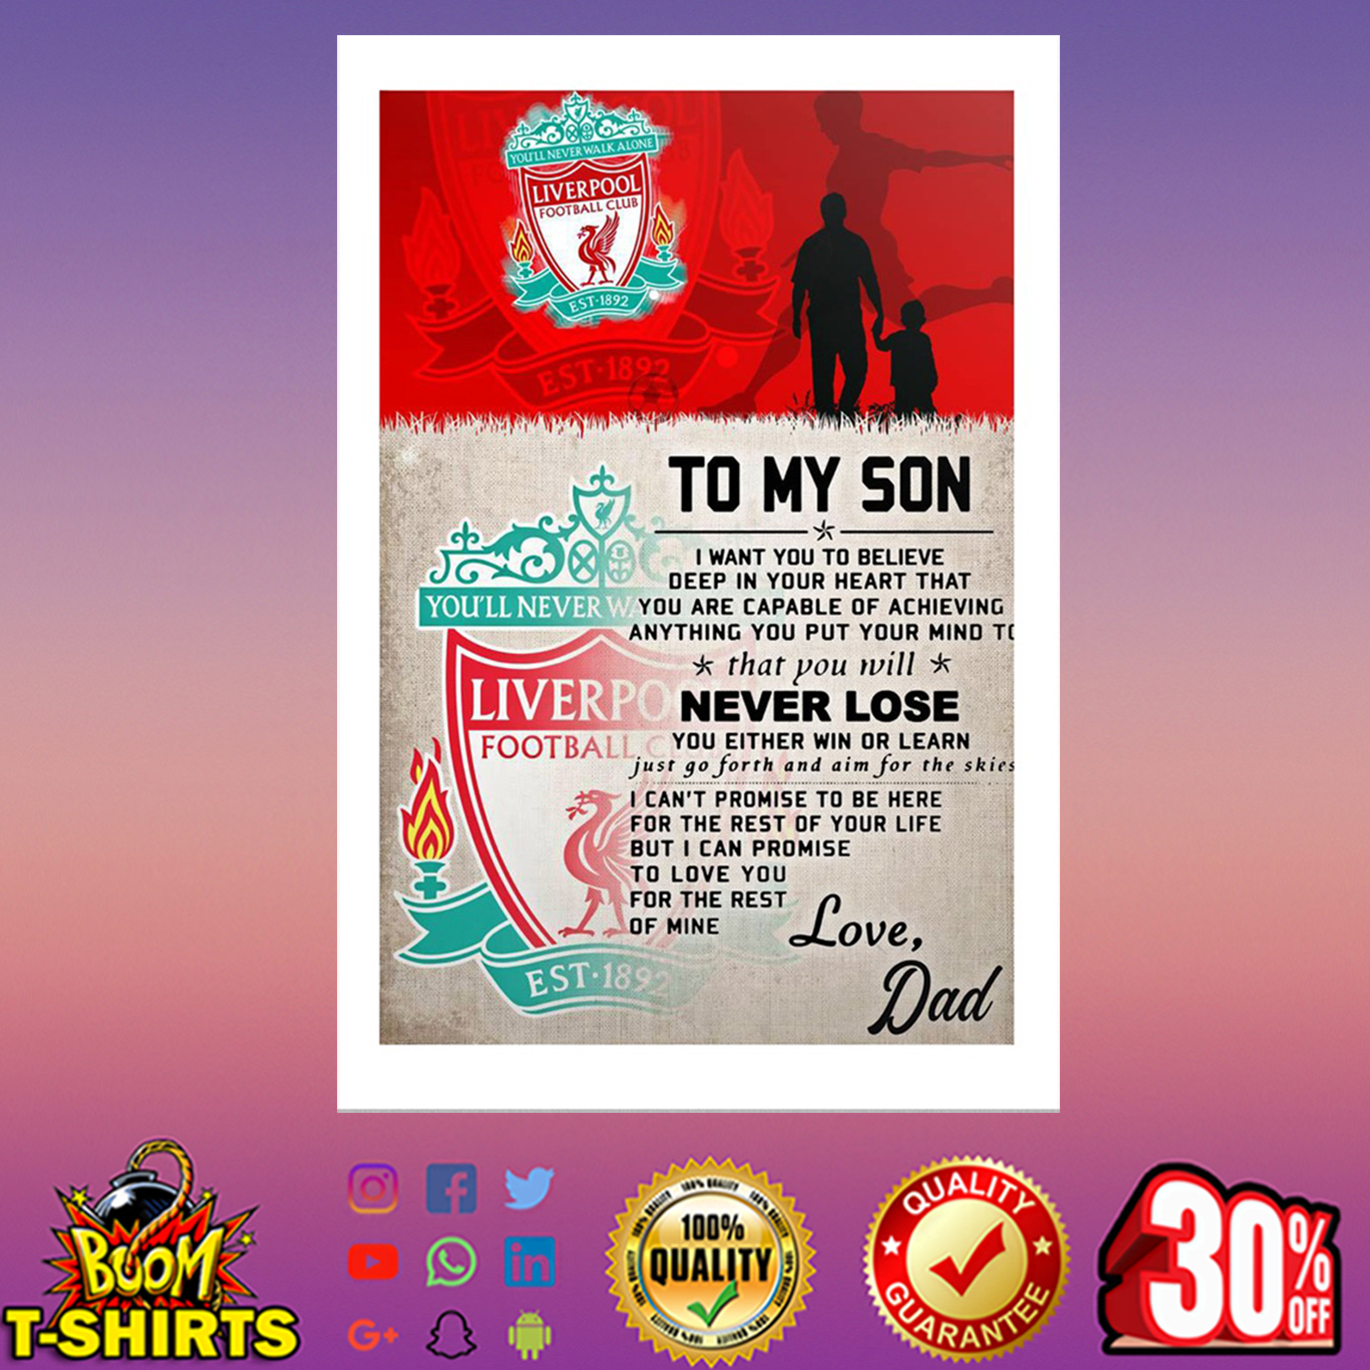 To my son love Dad Liverpool poster